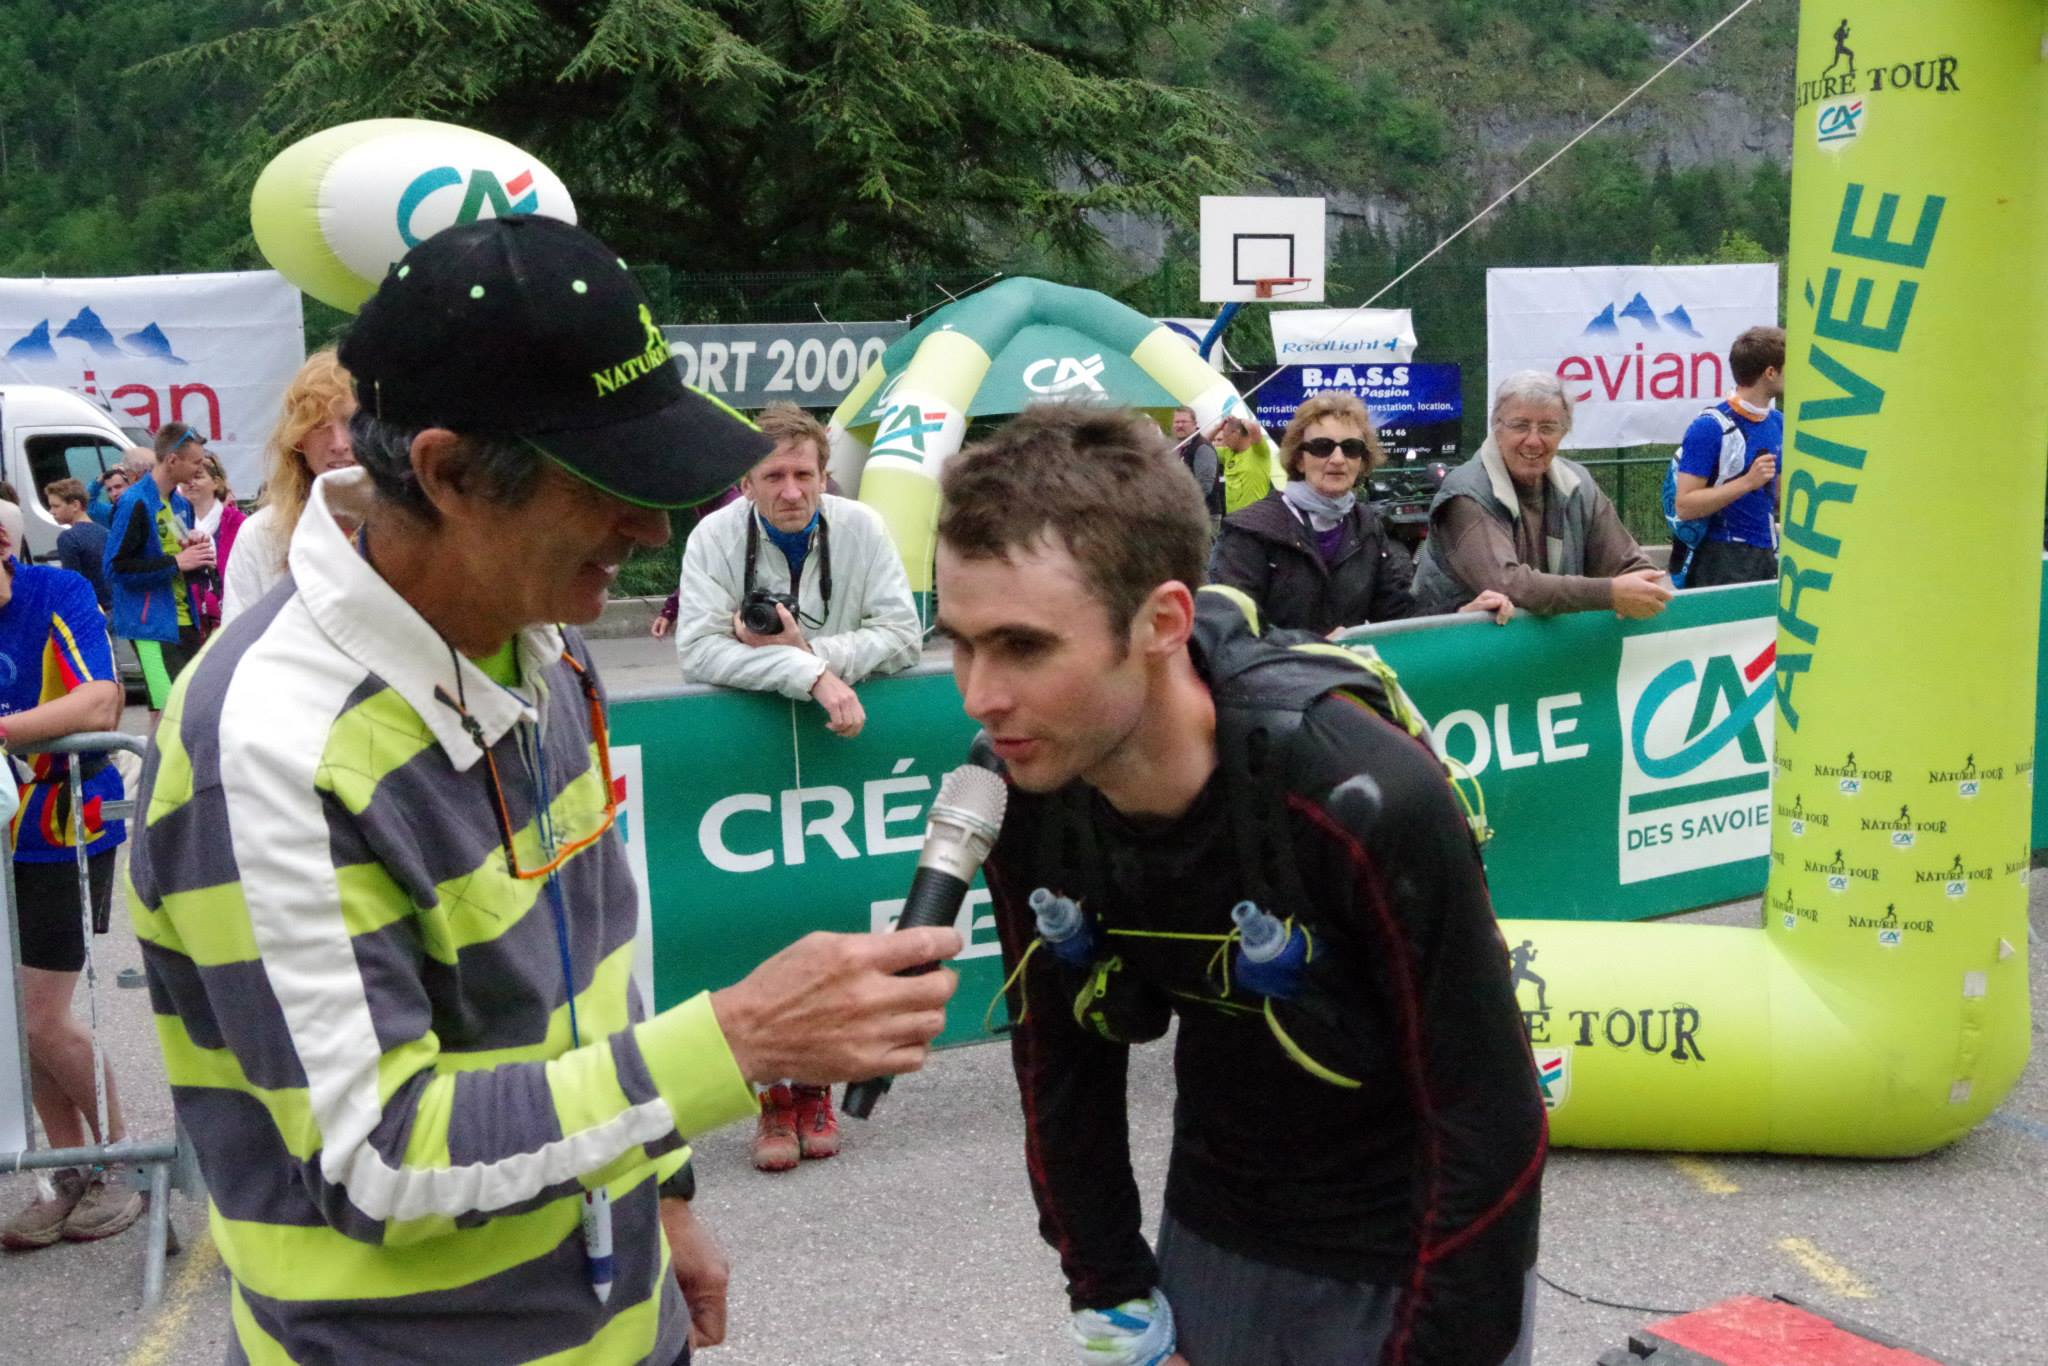 11289378 10153893294837782 3288244306785539162 o - RESULTATS, COMMENTAIRES, PHOTOS ET VIDEO DES TRAILS DE LA VALLEE DU BREVON / 24-05-15